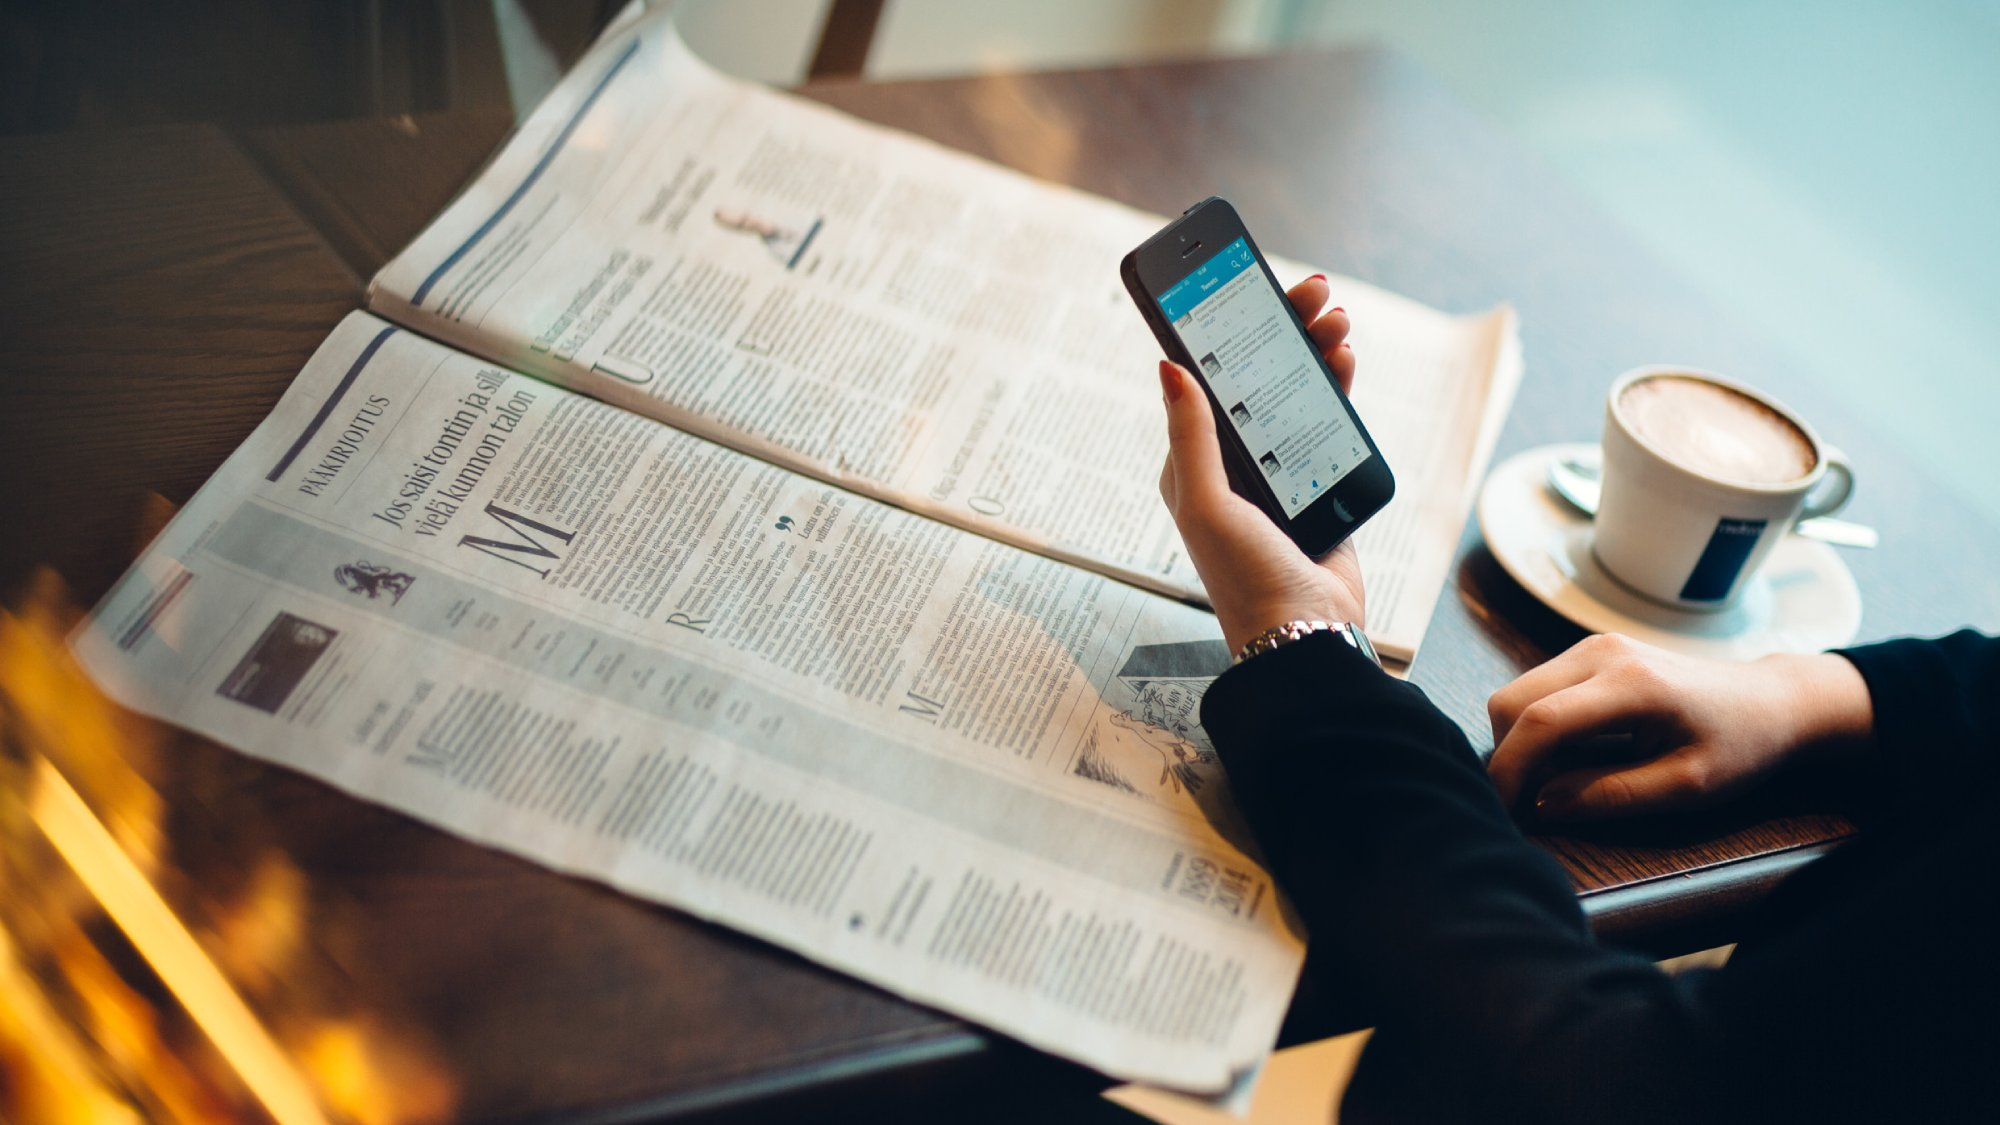 Woman holding a mobile phone while reading a newspaper